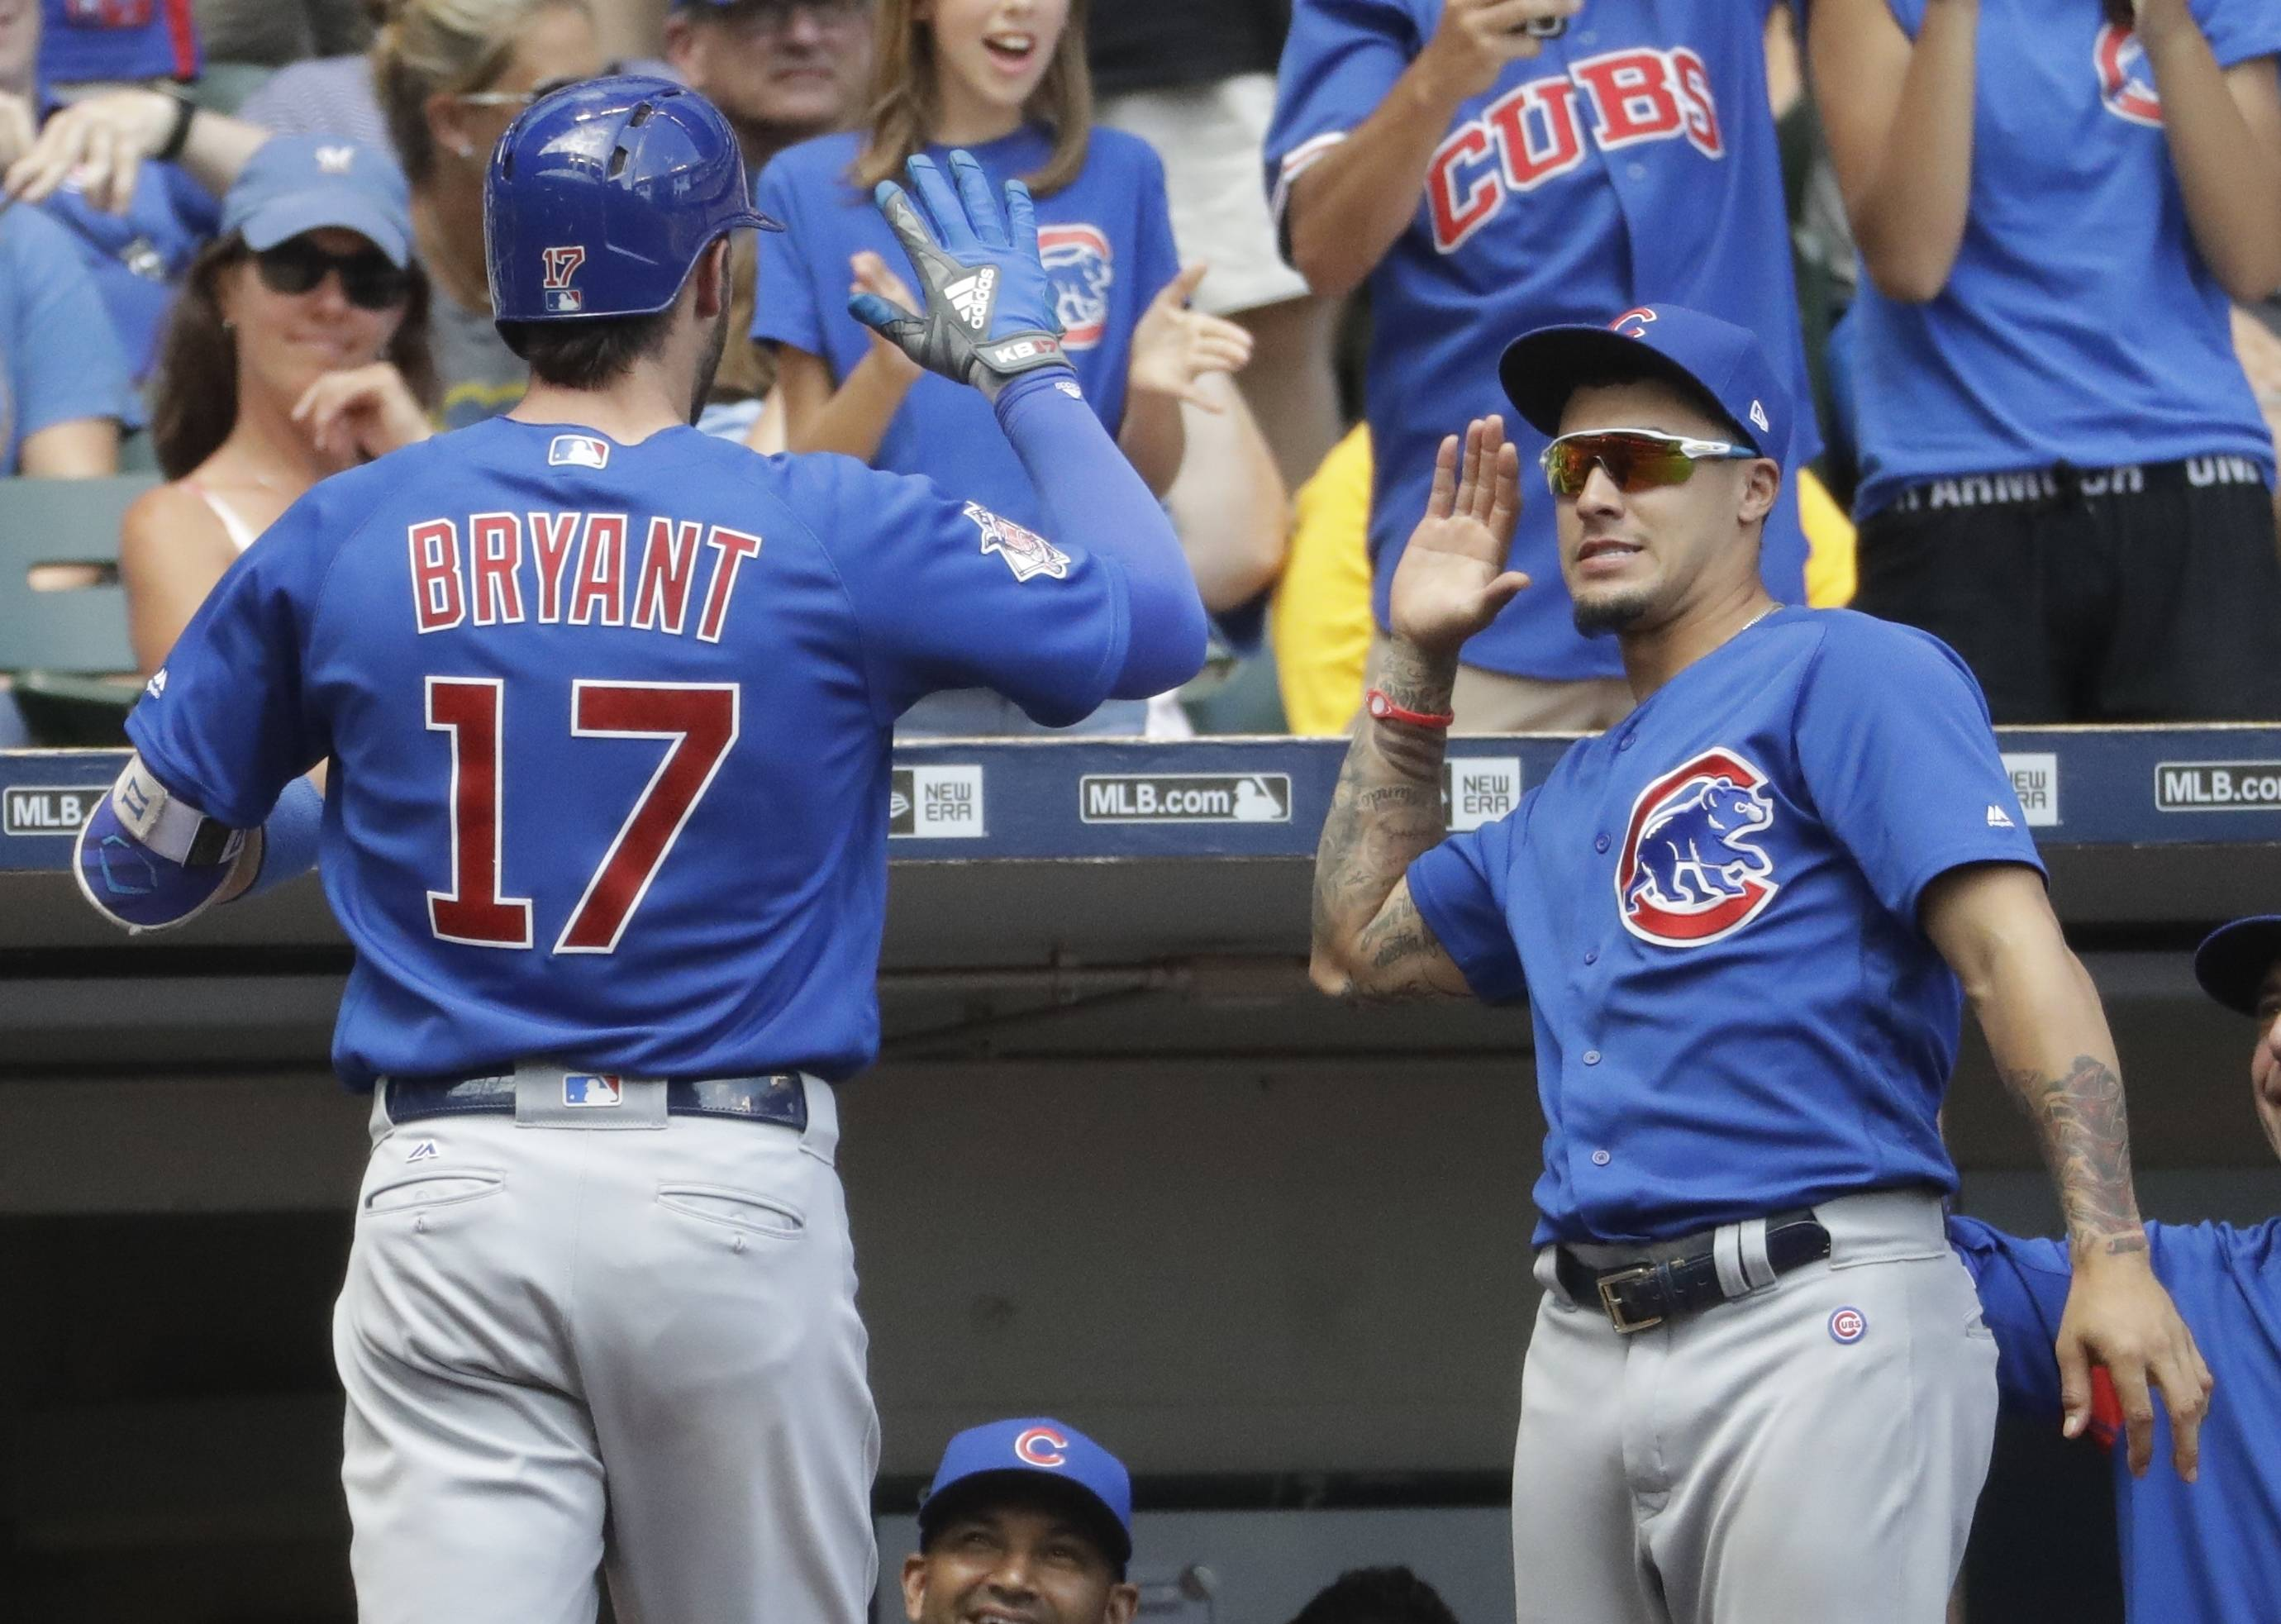 Chicago Cubs' Kris Bryant is congratulated by Javier Baez after hitting a home run during the eighth inning of a baseball game against the Milwaukee Brewers Sunday, July 30, 2017, in Milwaukee.